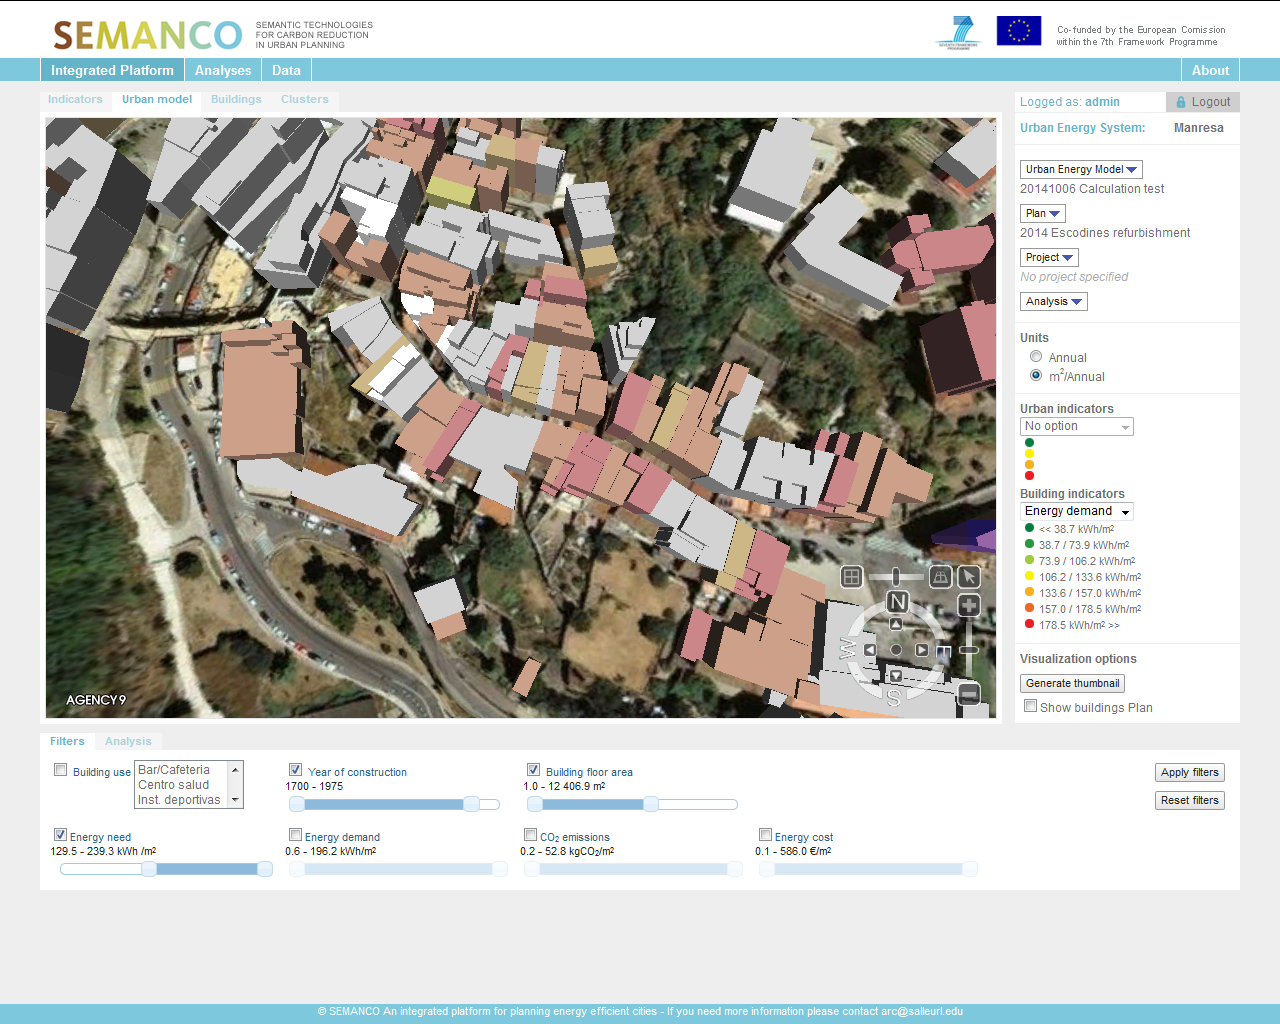 3.2. Filtering buildings according to energy related data